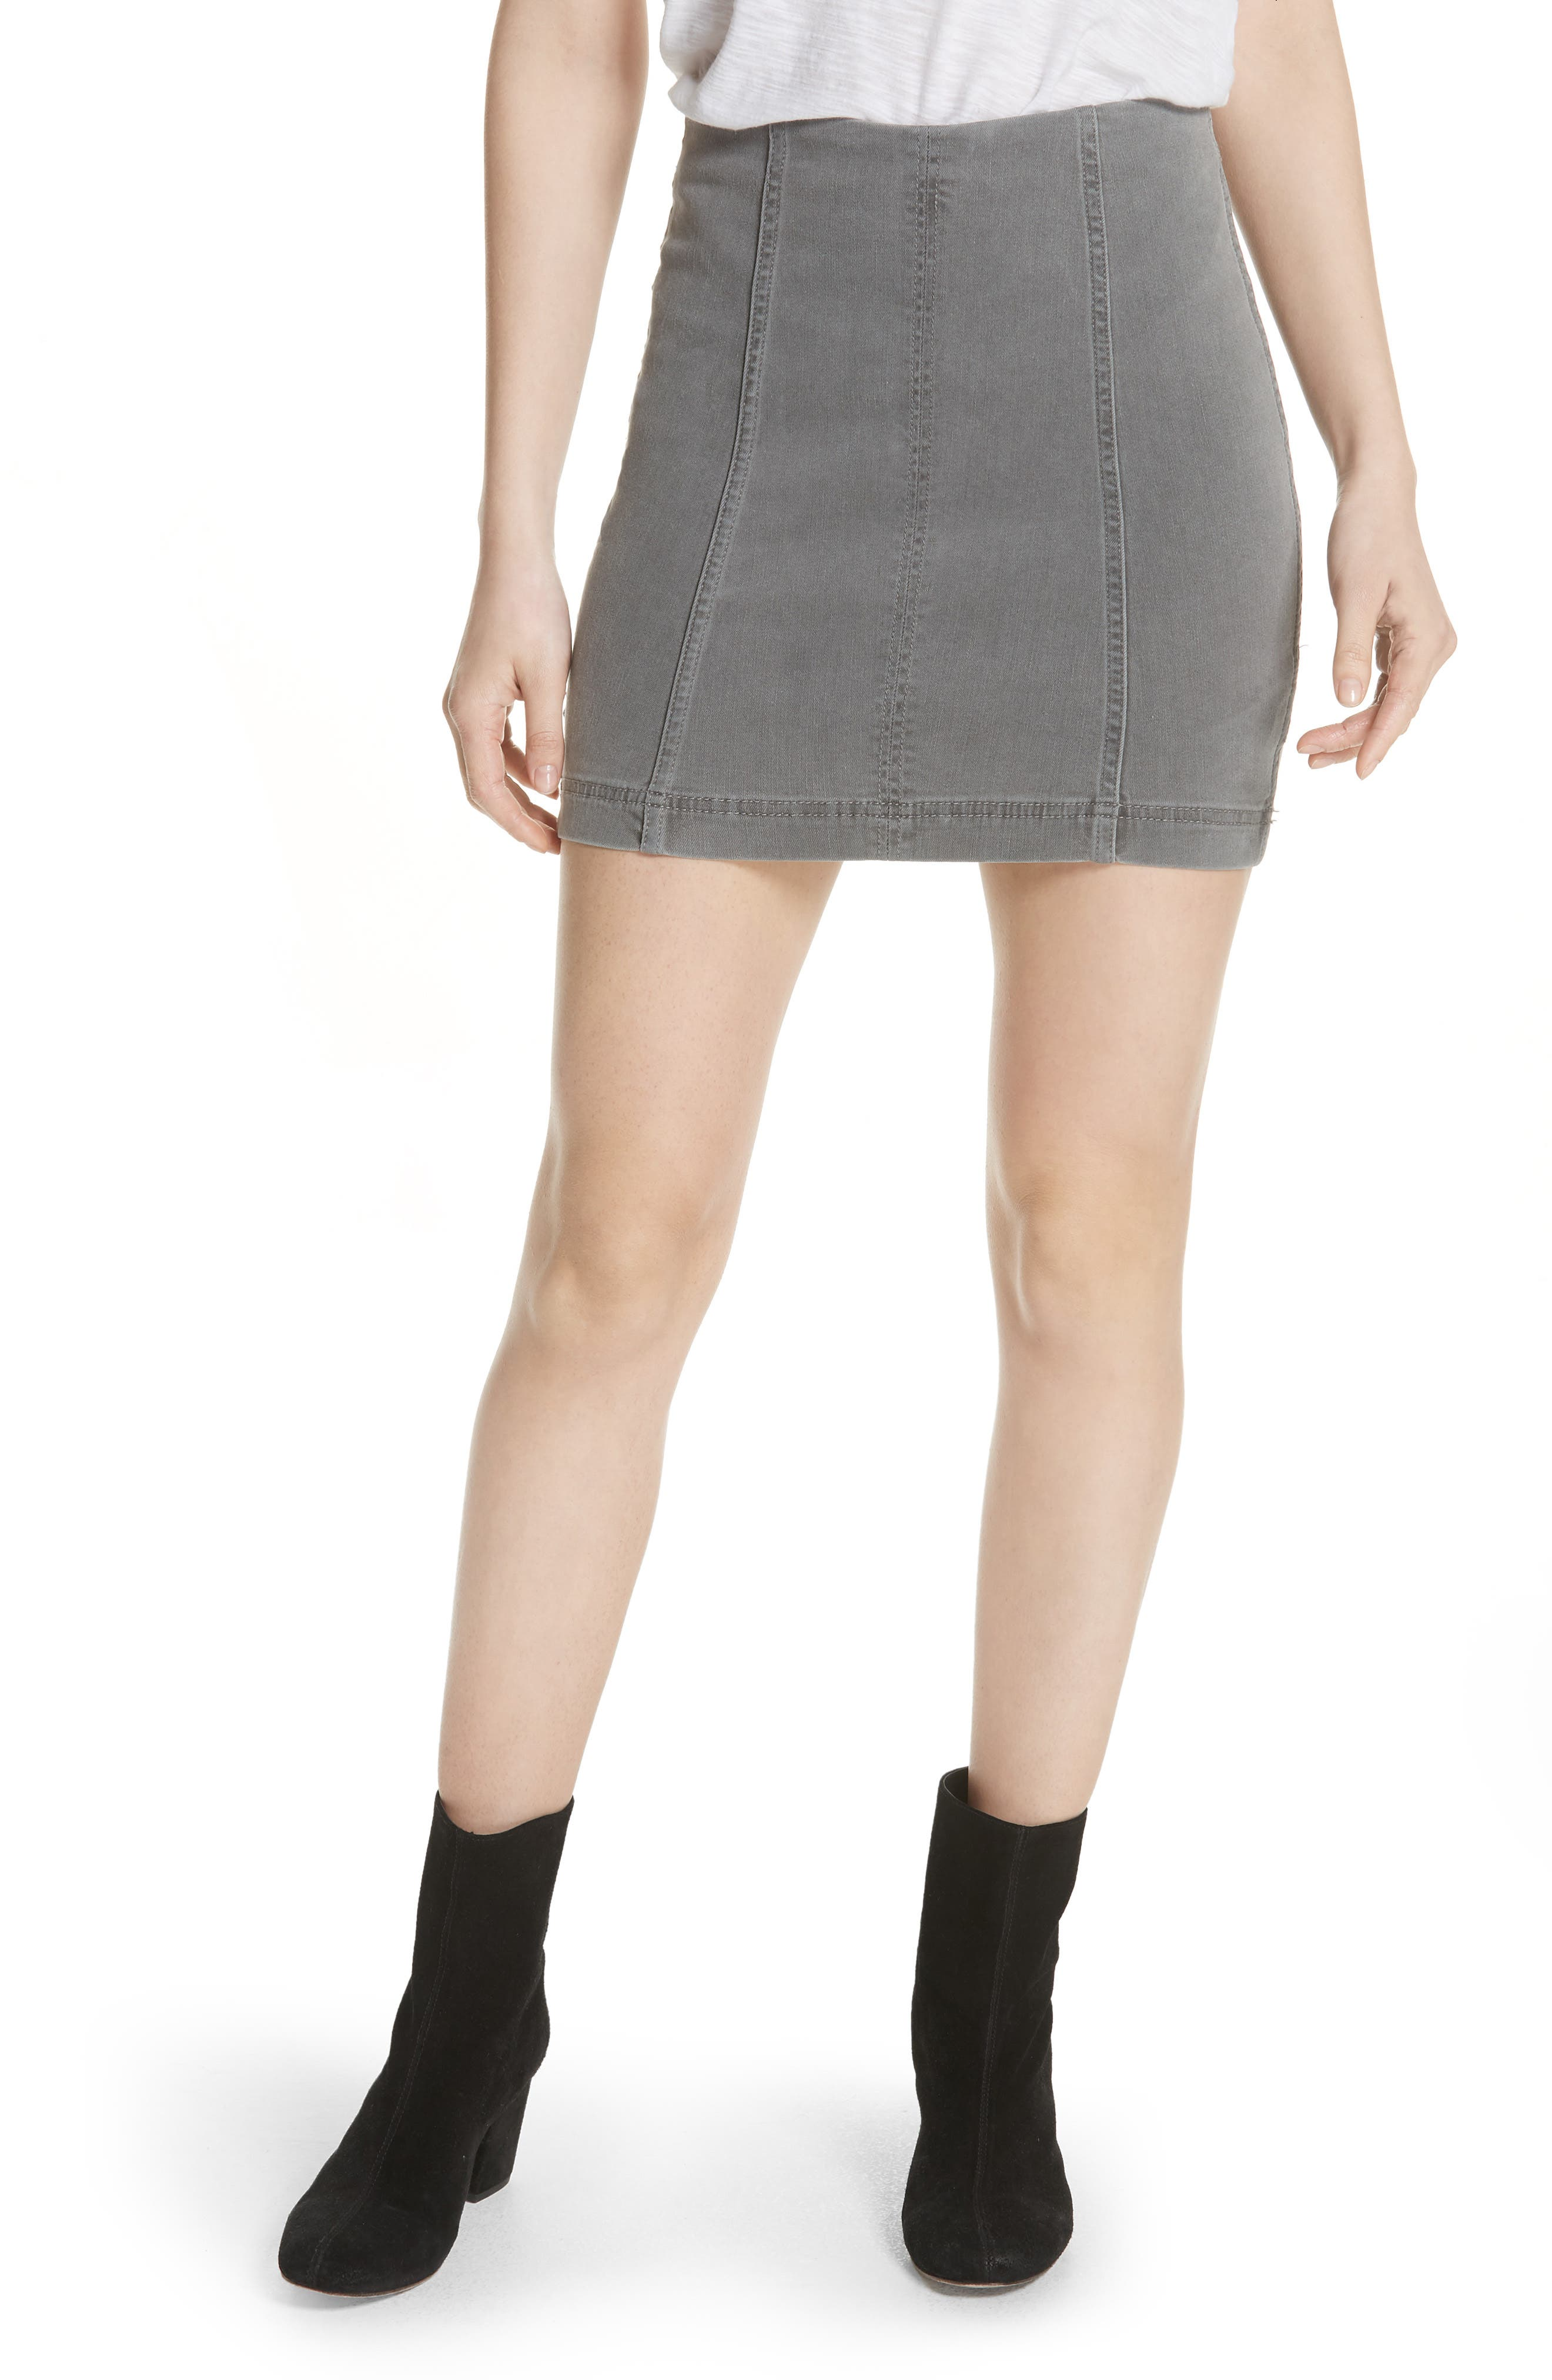 FREE PEOPLE We the Free by Free People Modern Femme Denim Miniskirt, Main, color, LIGHT GREY